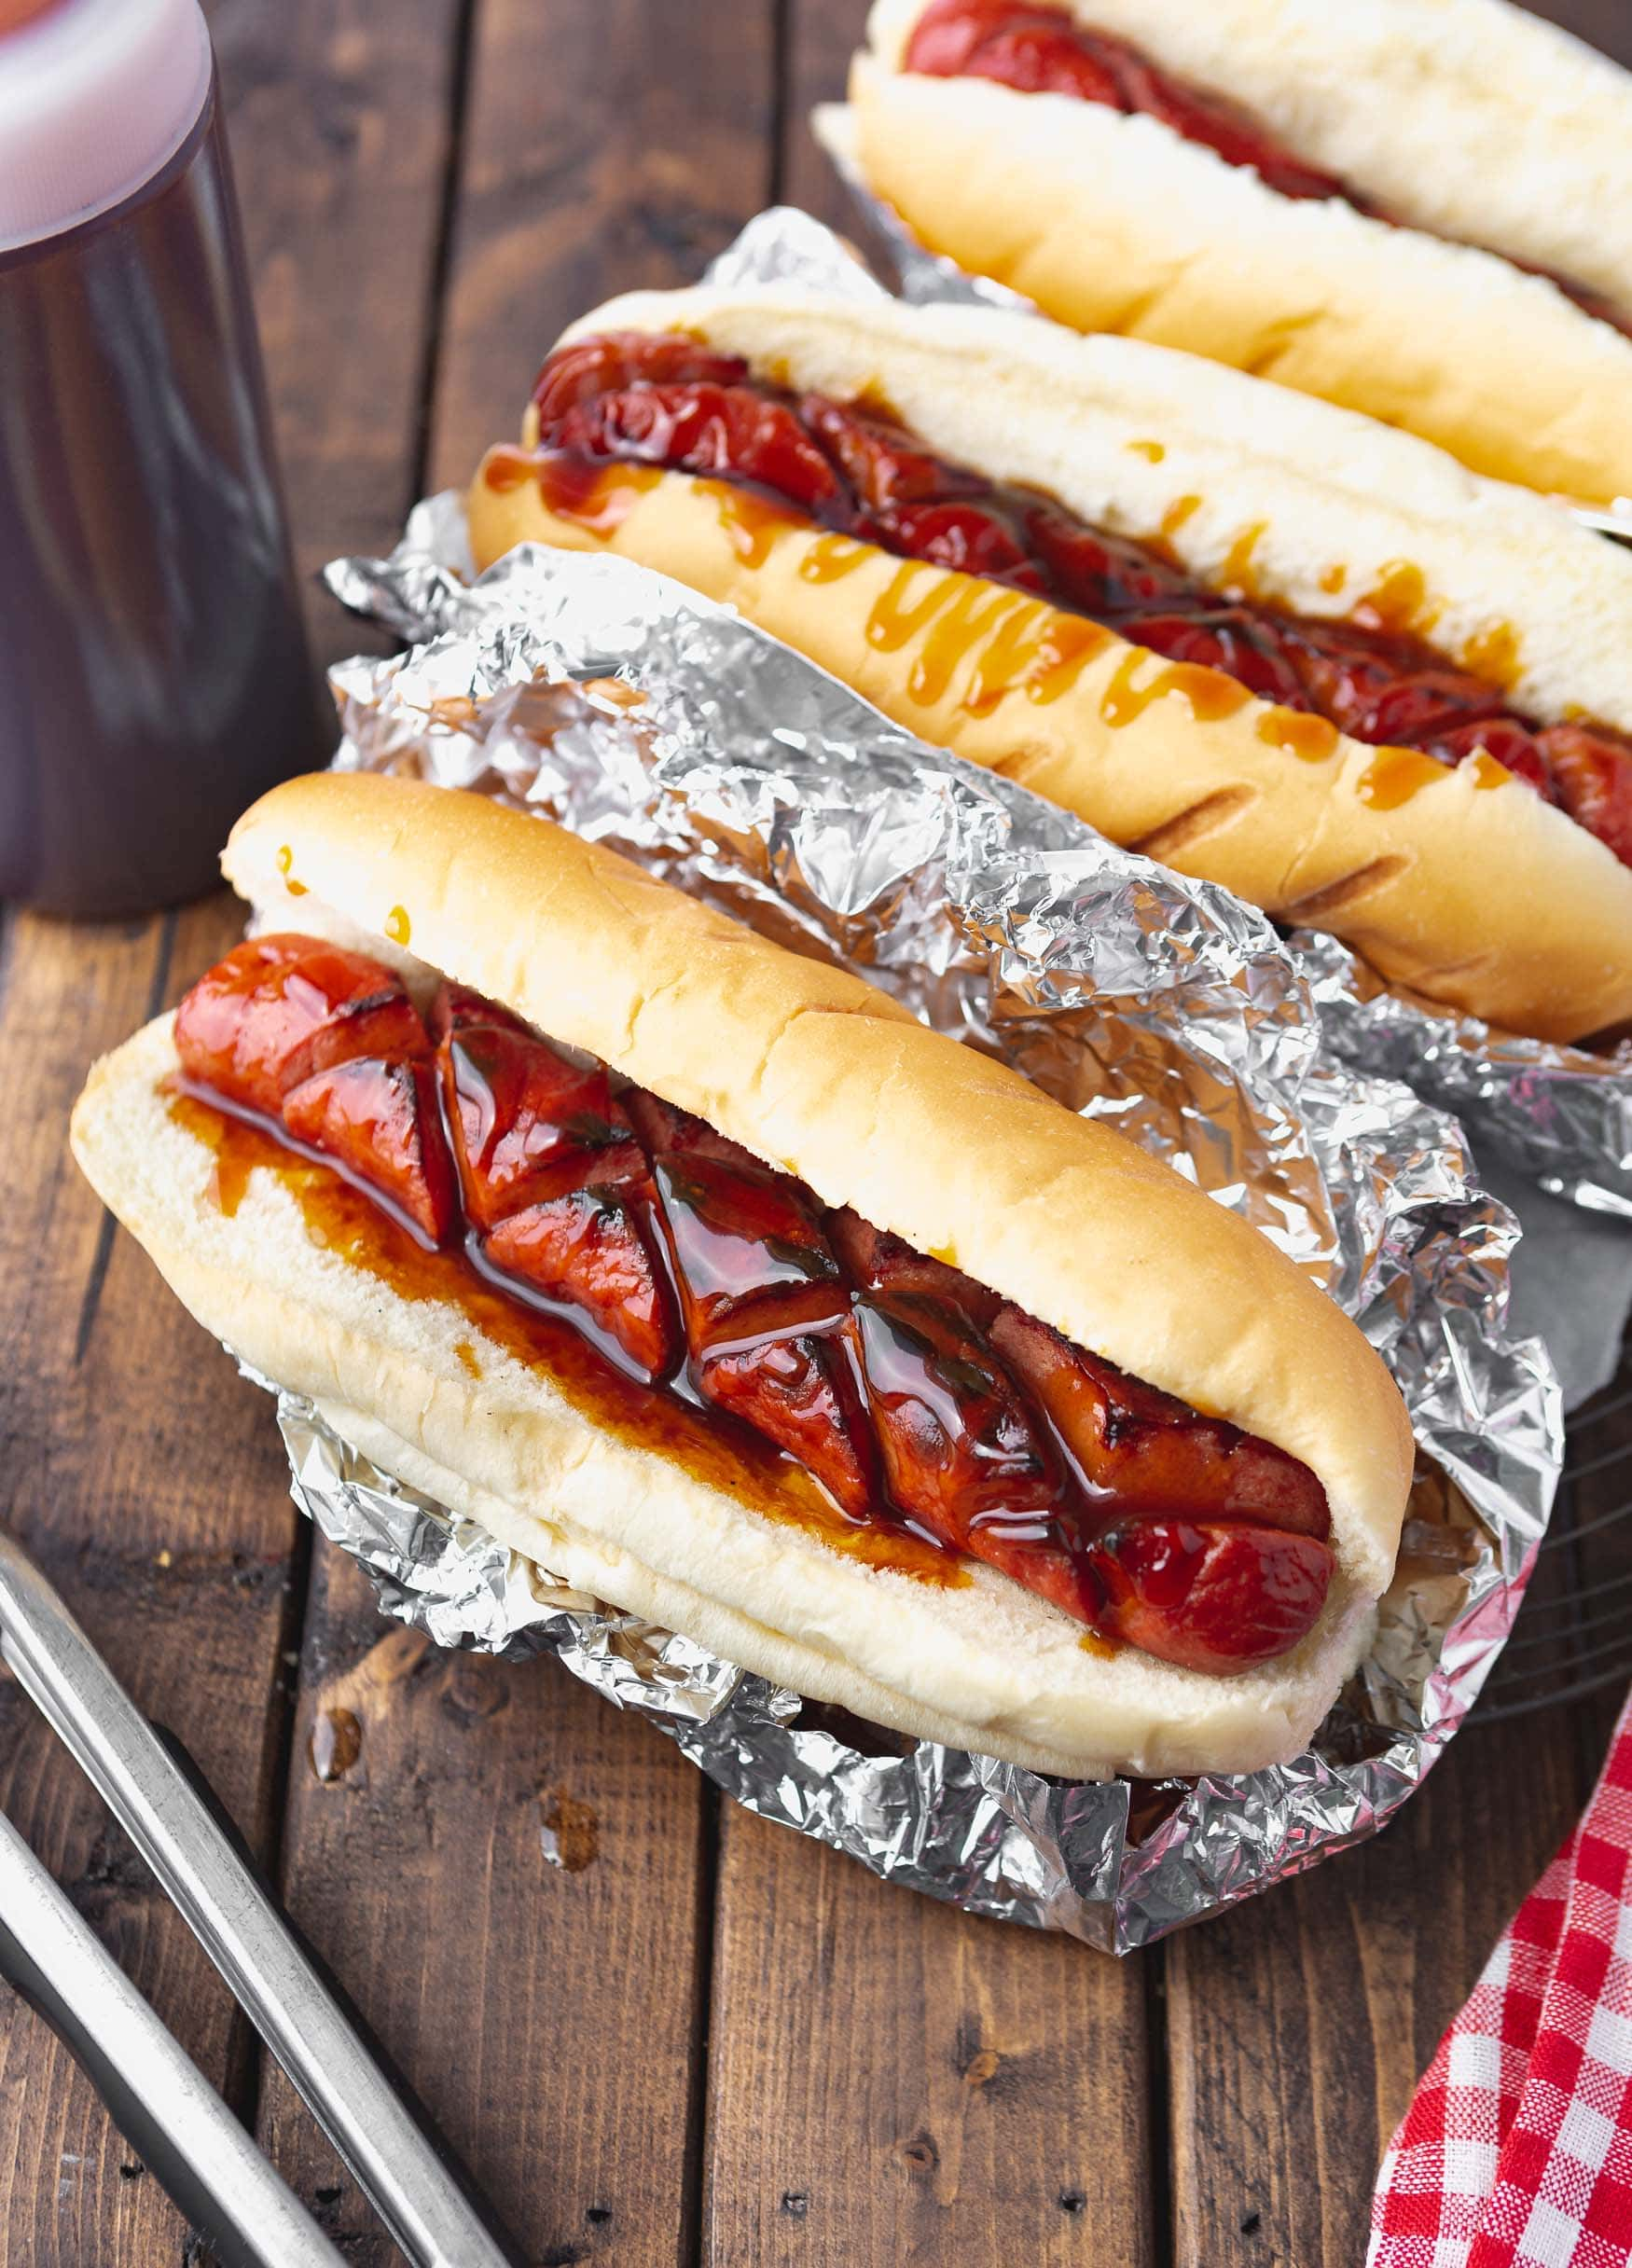 a photo of a grilled hotdog that has been sliced in a crisscross fashion sitting in a bun inside aluminum foil. The hotdog is covered in special sauce.